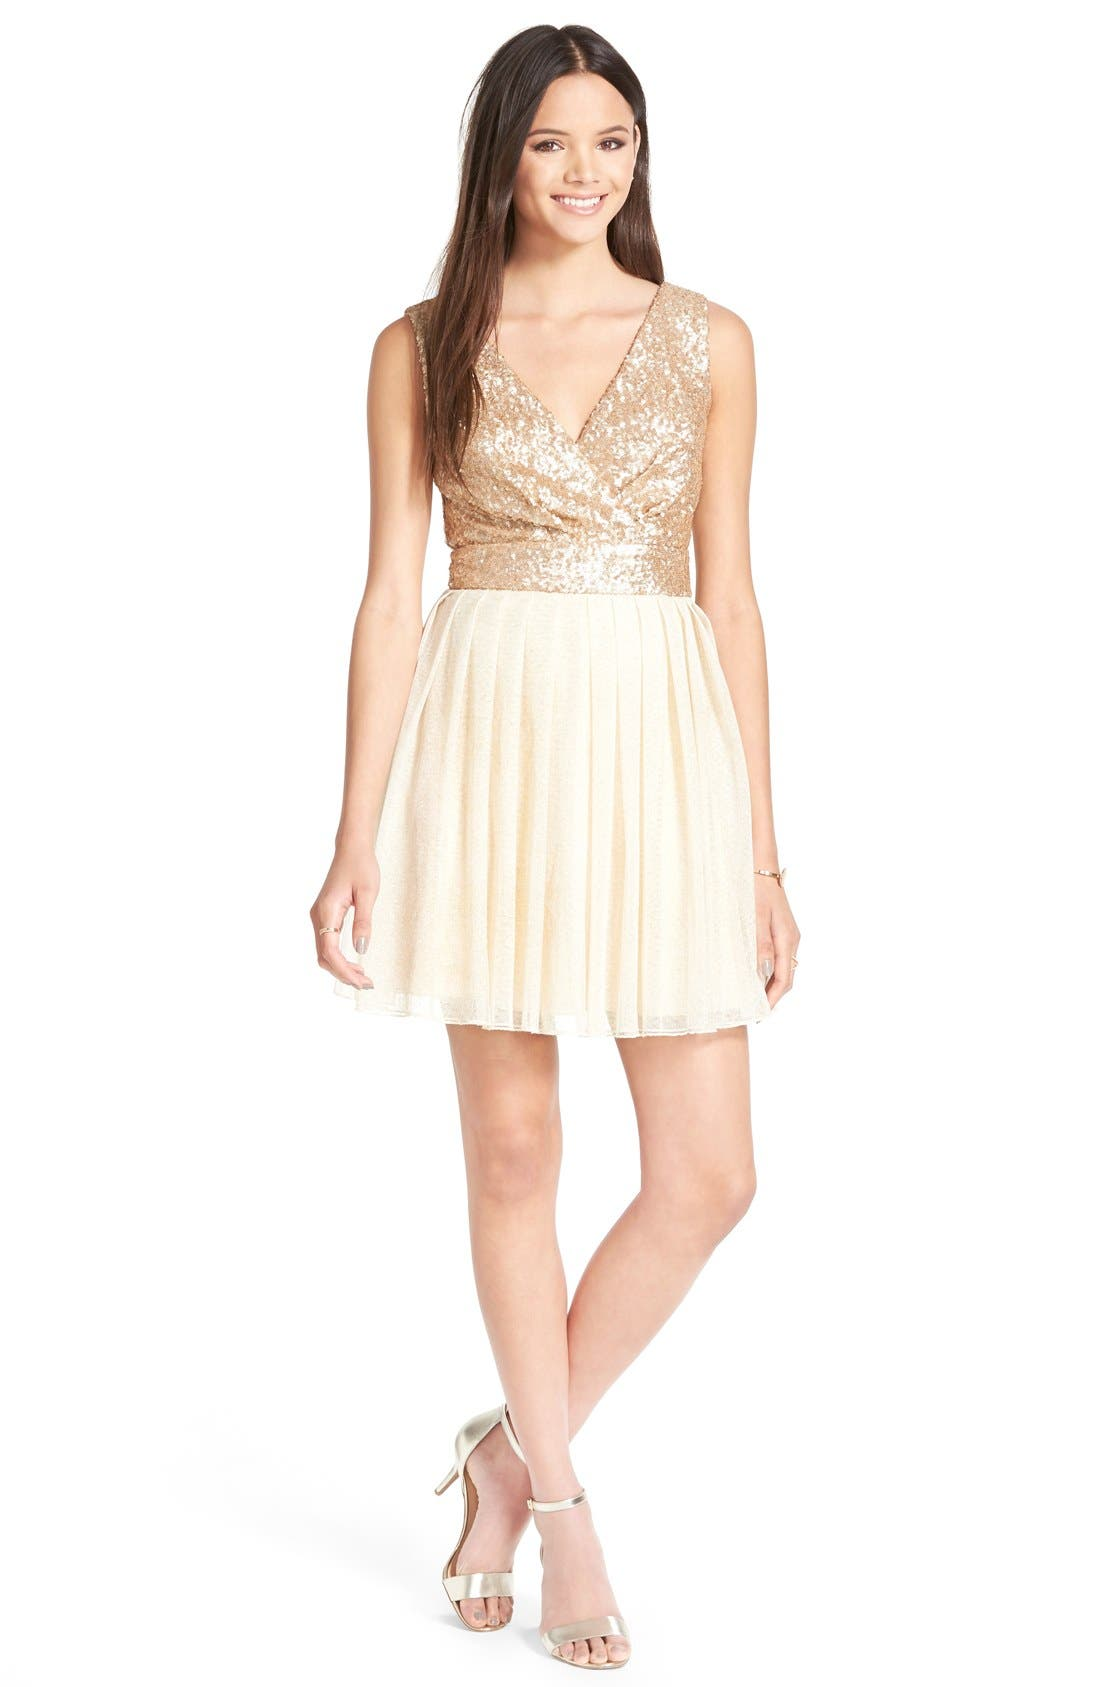 Main Image - Speechless Sequin Bodice Skater Dress